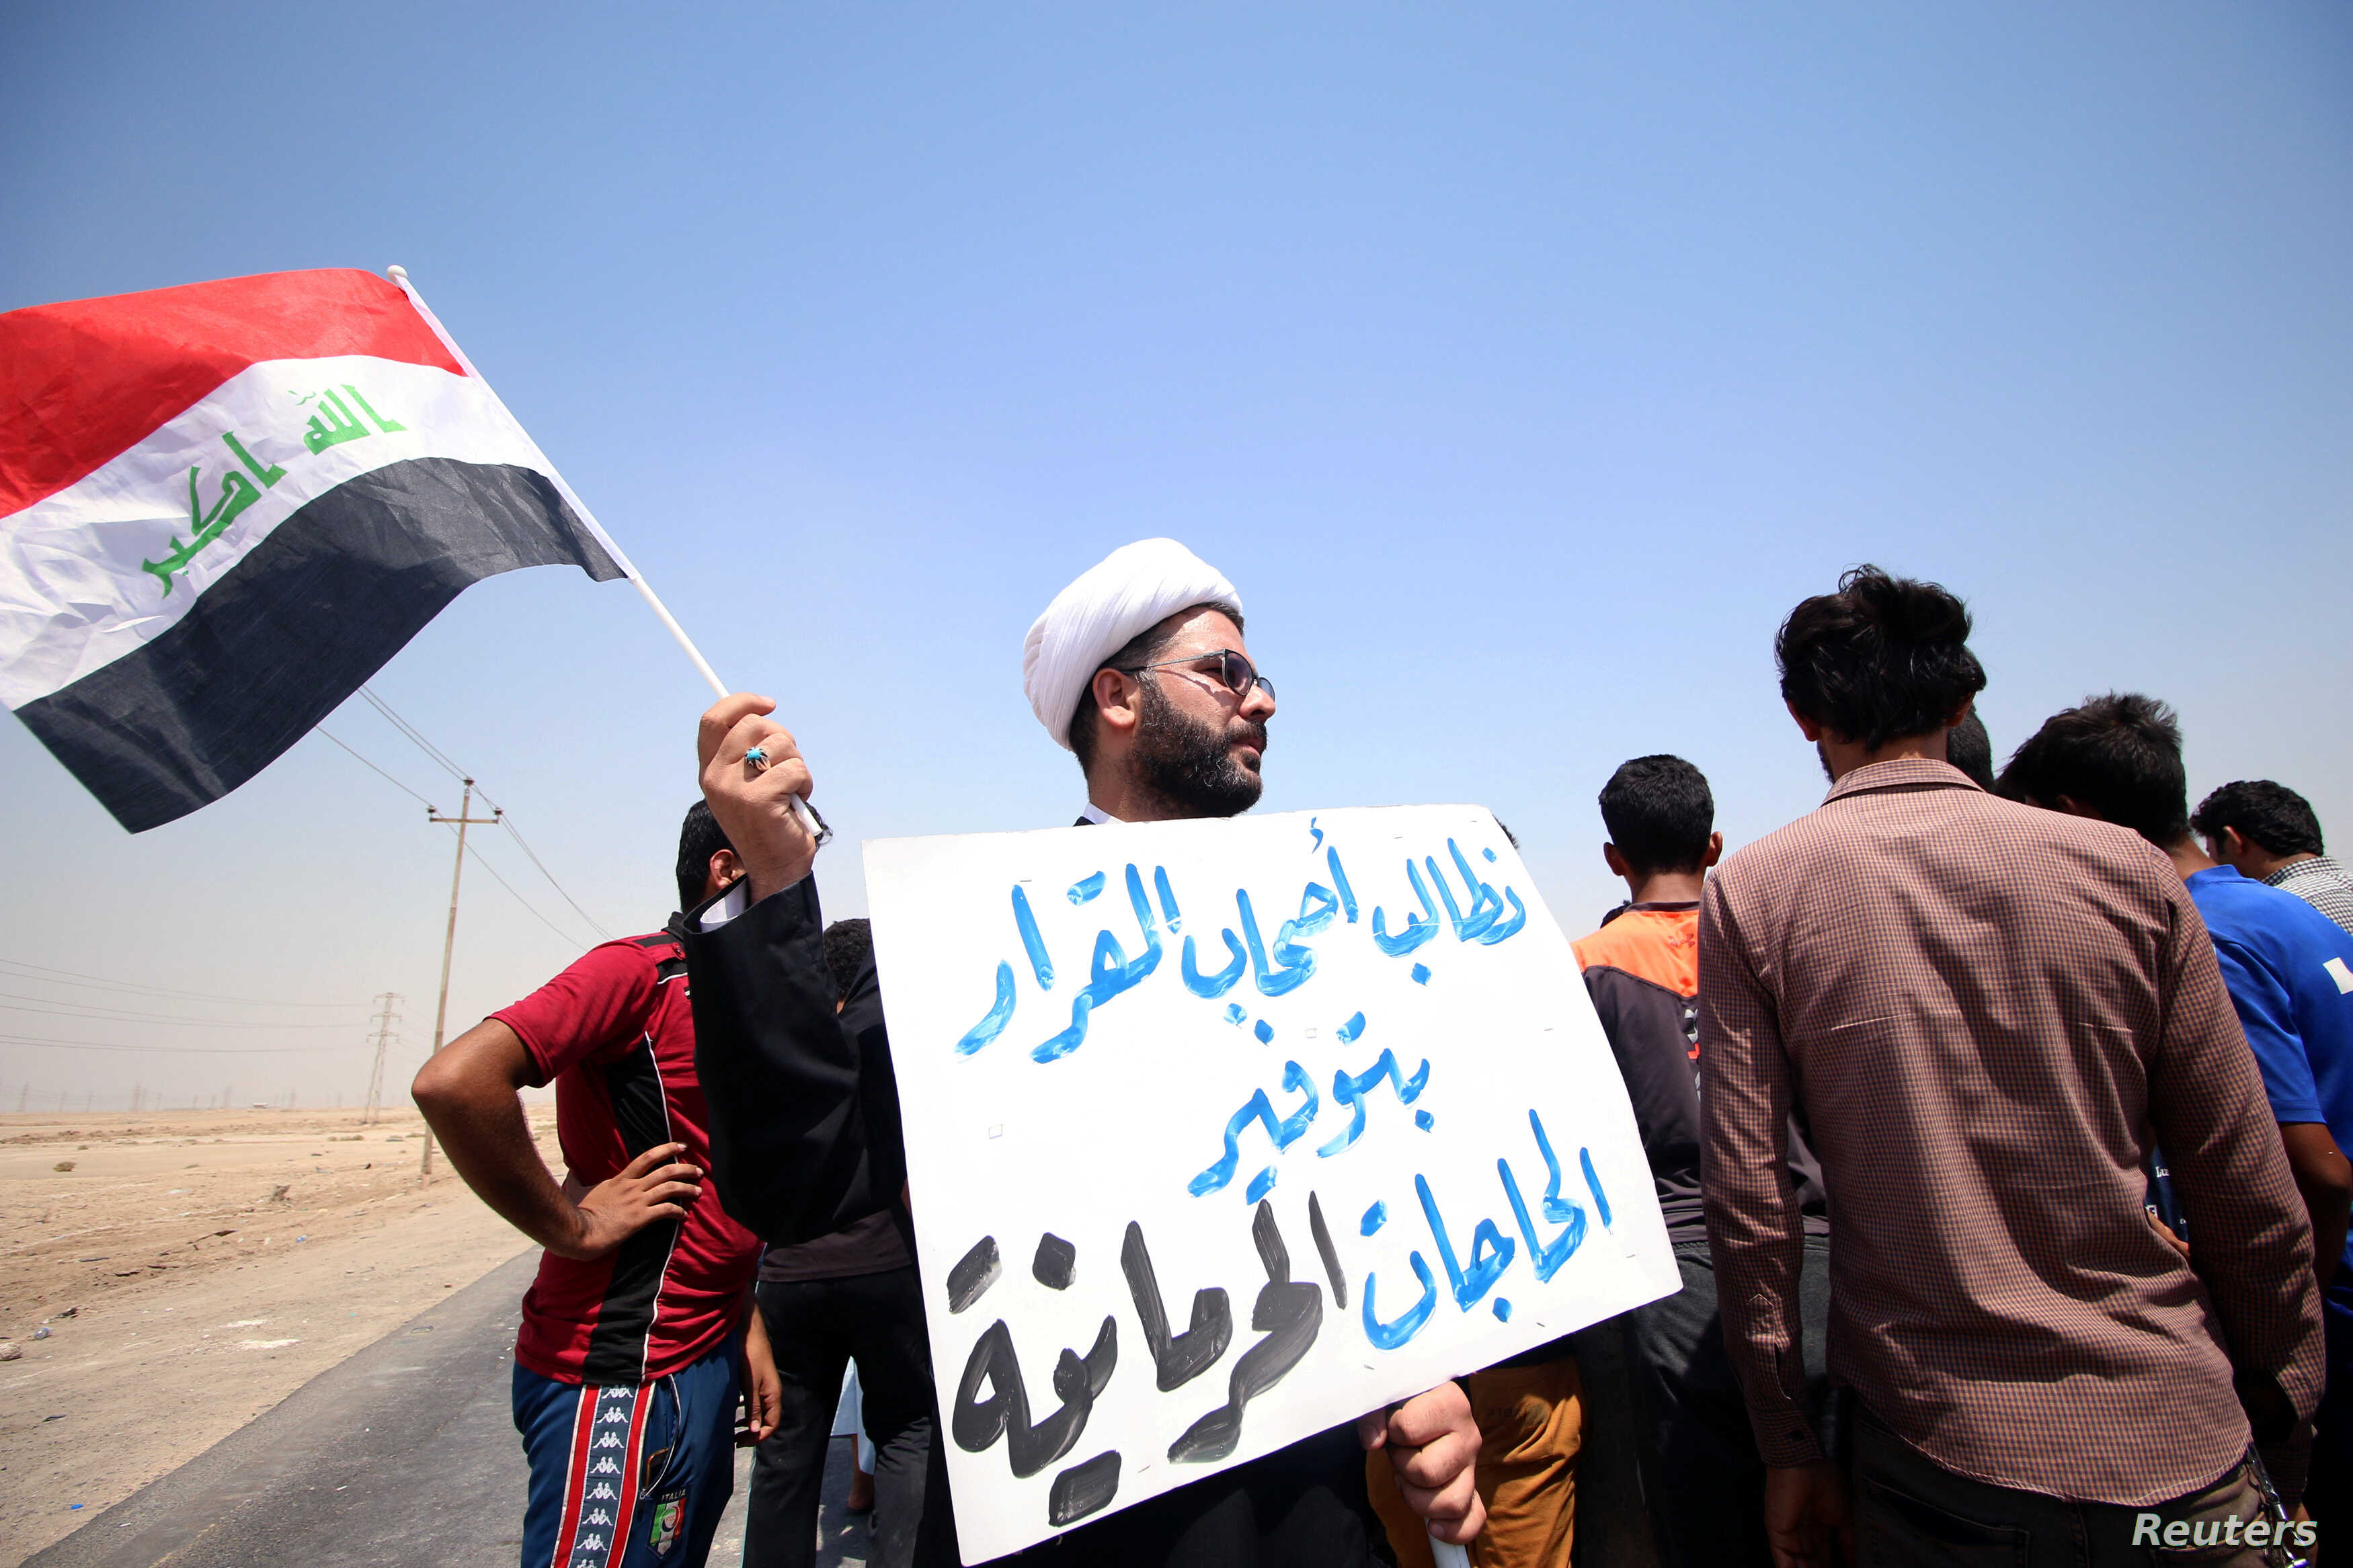 """A protester holds a sign that reads """"We ask the decision makers to provide the things we are deprived of"""" during a protest in south of Basra, Iraq July 16, 2018."""